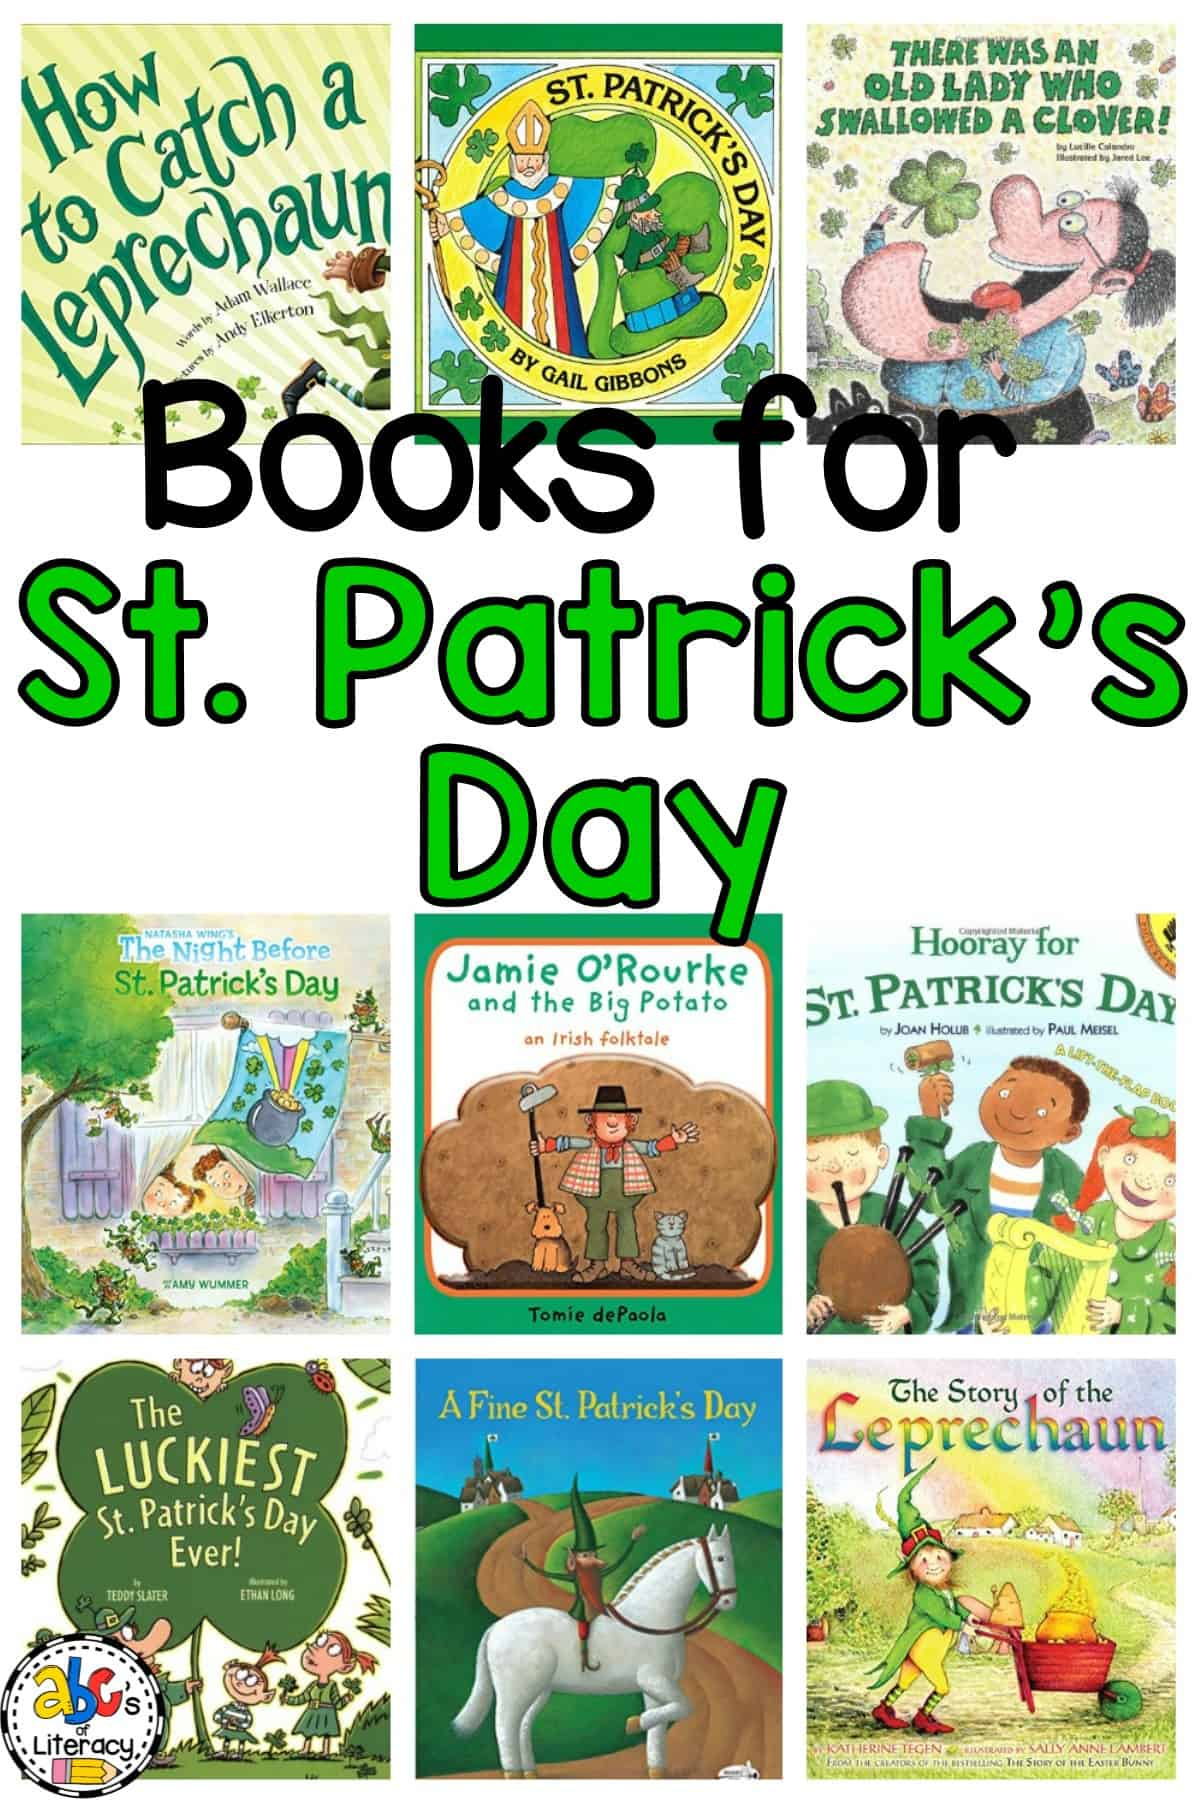 St. Patrick's Day Book, Books for St. Patrick's Day, St. Patrick's Day Picture Books